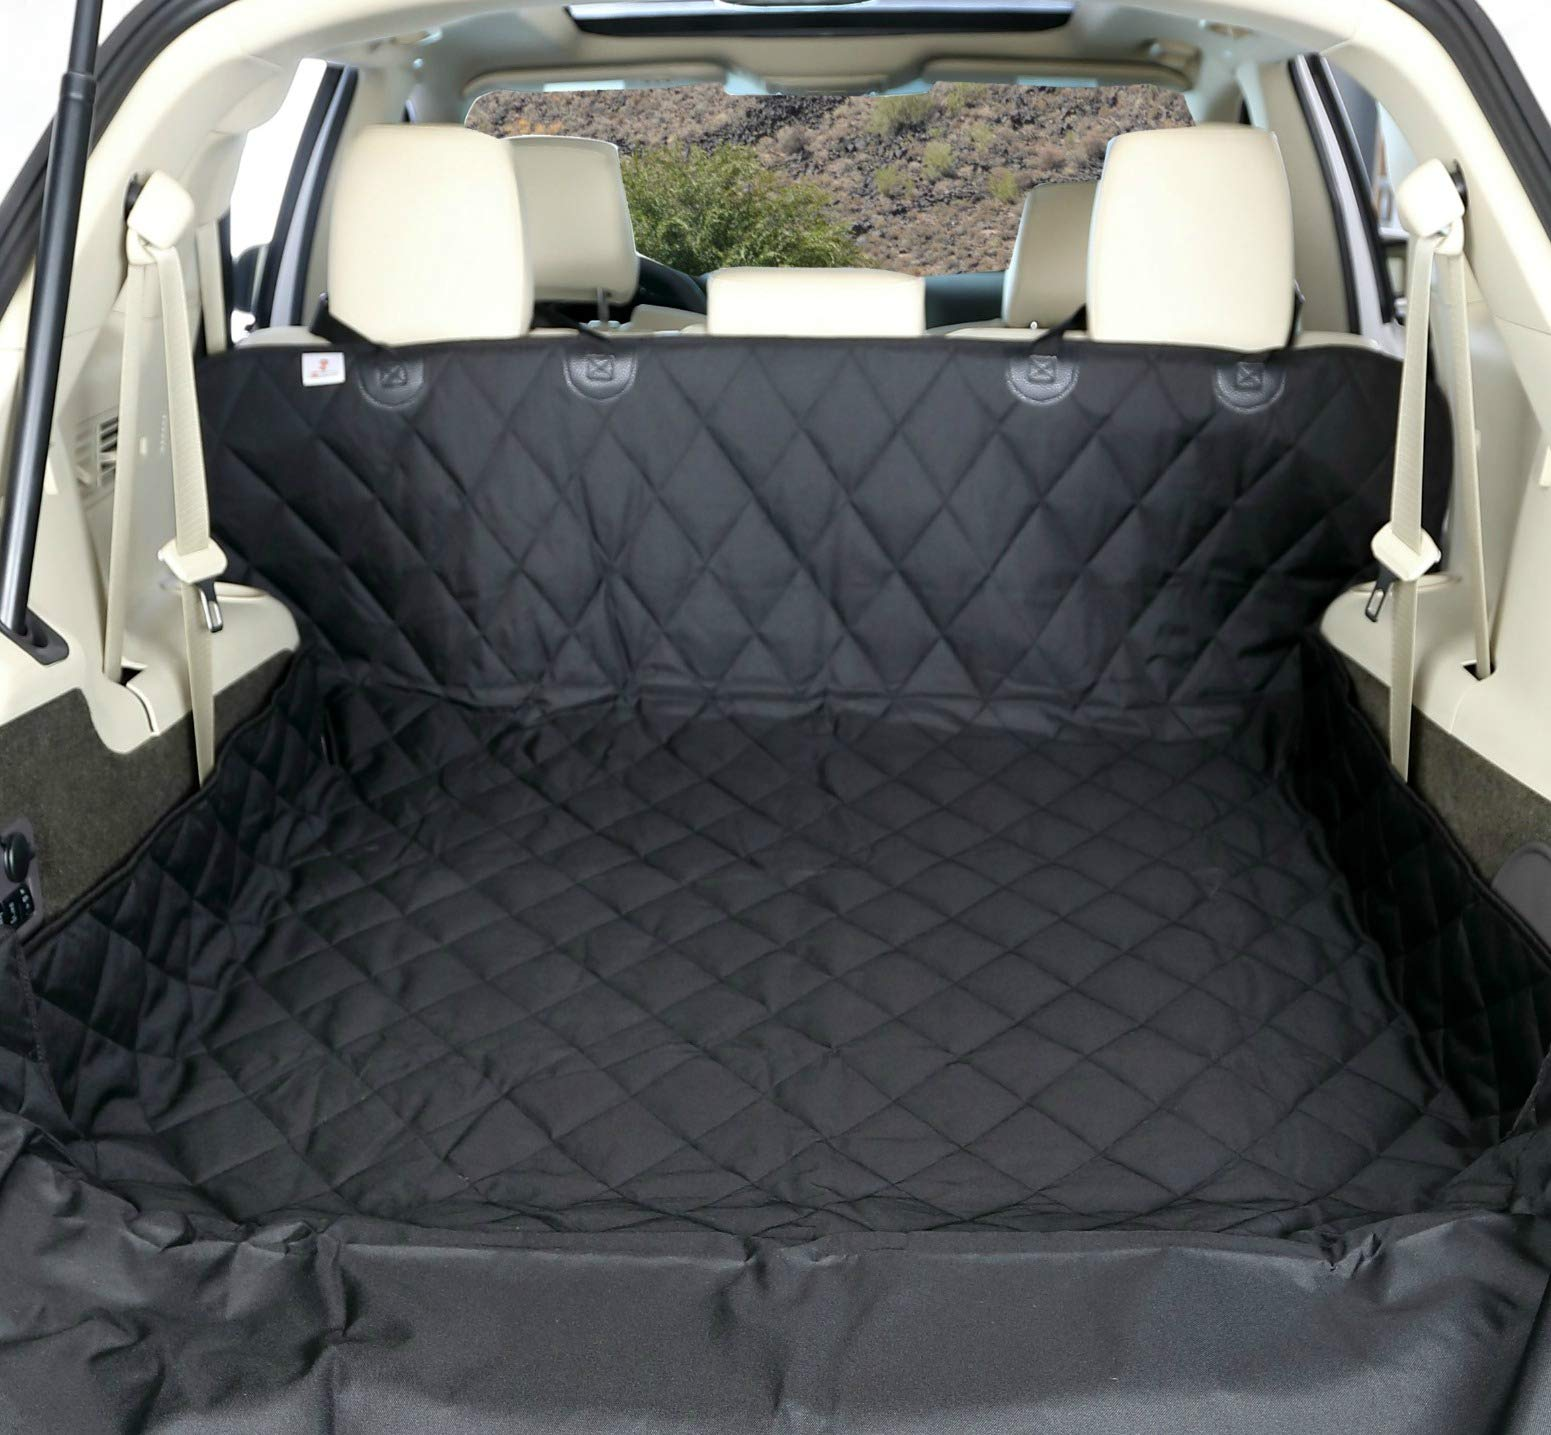 4Knines SUV Cargo Liner for Dogs - Black Extra Large - USA Based Company